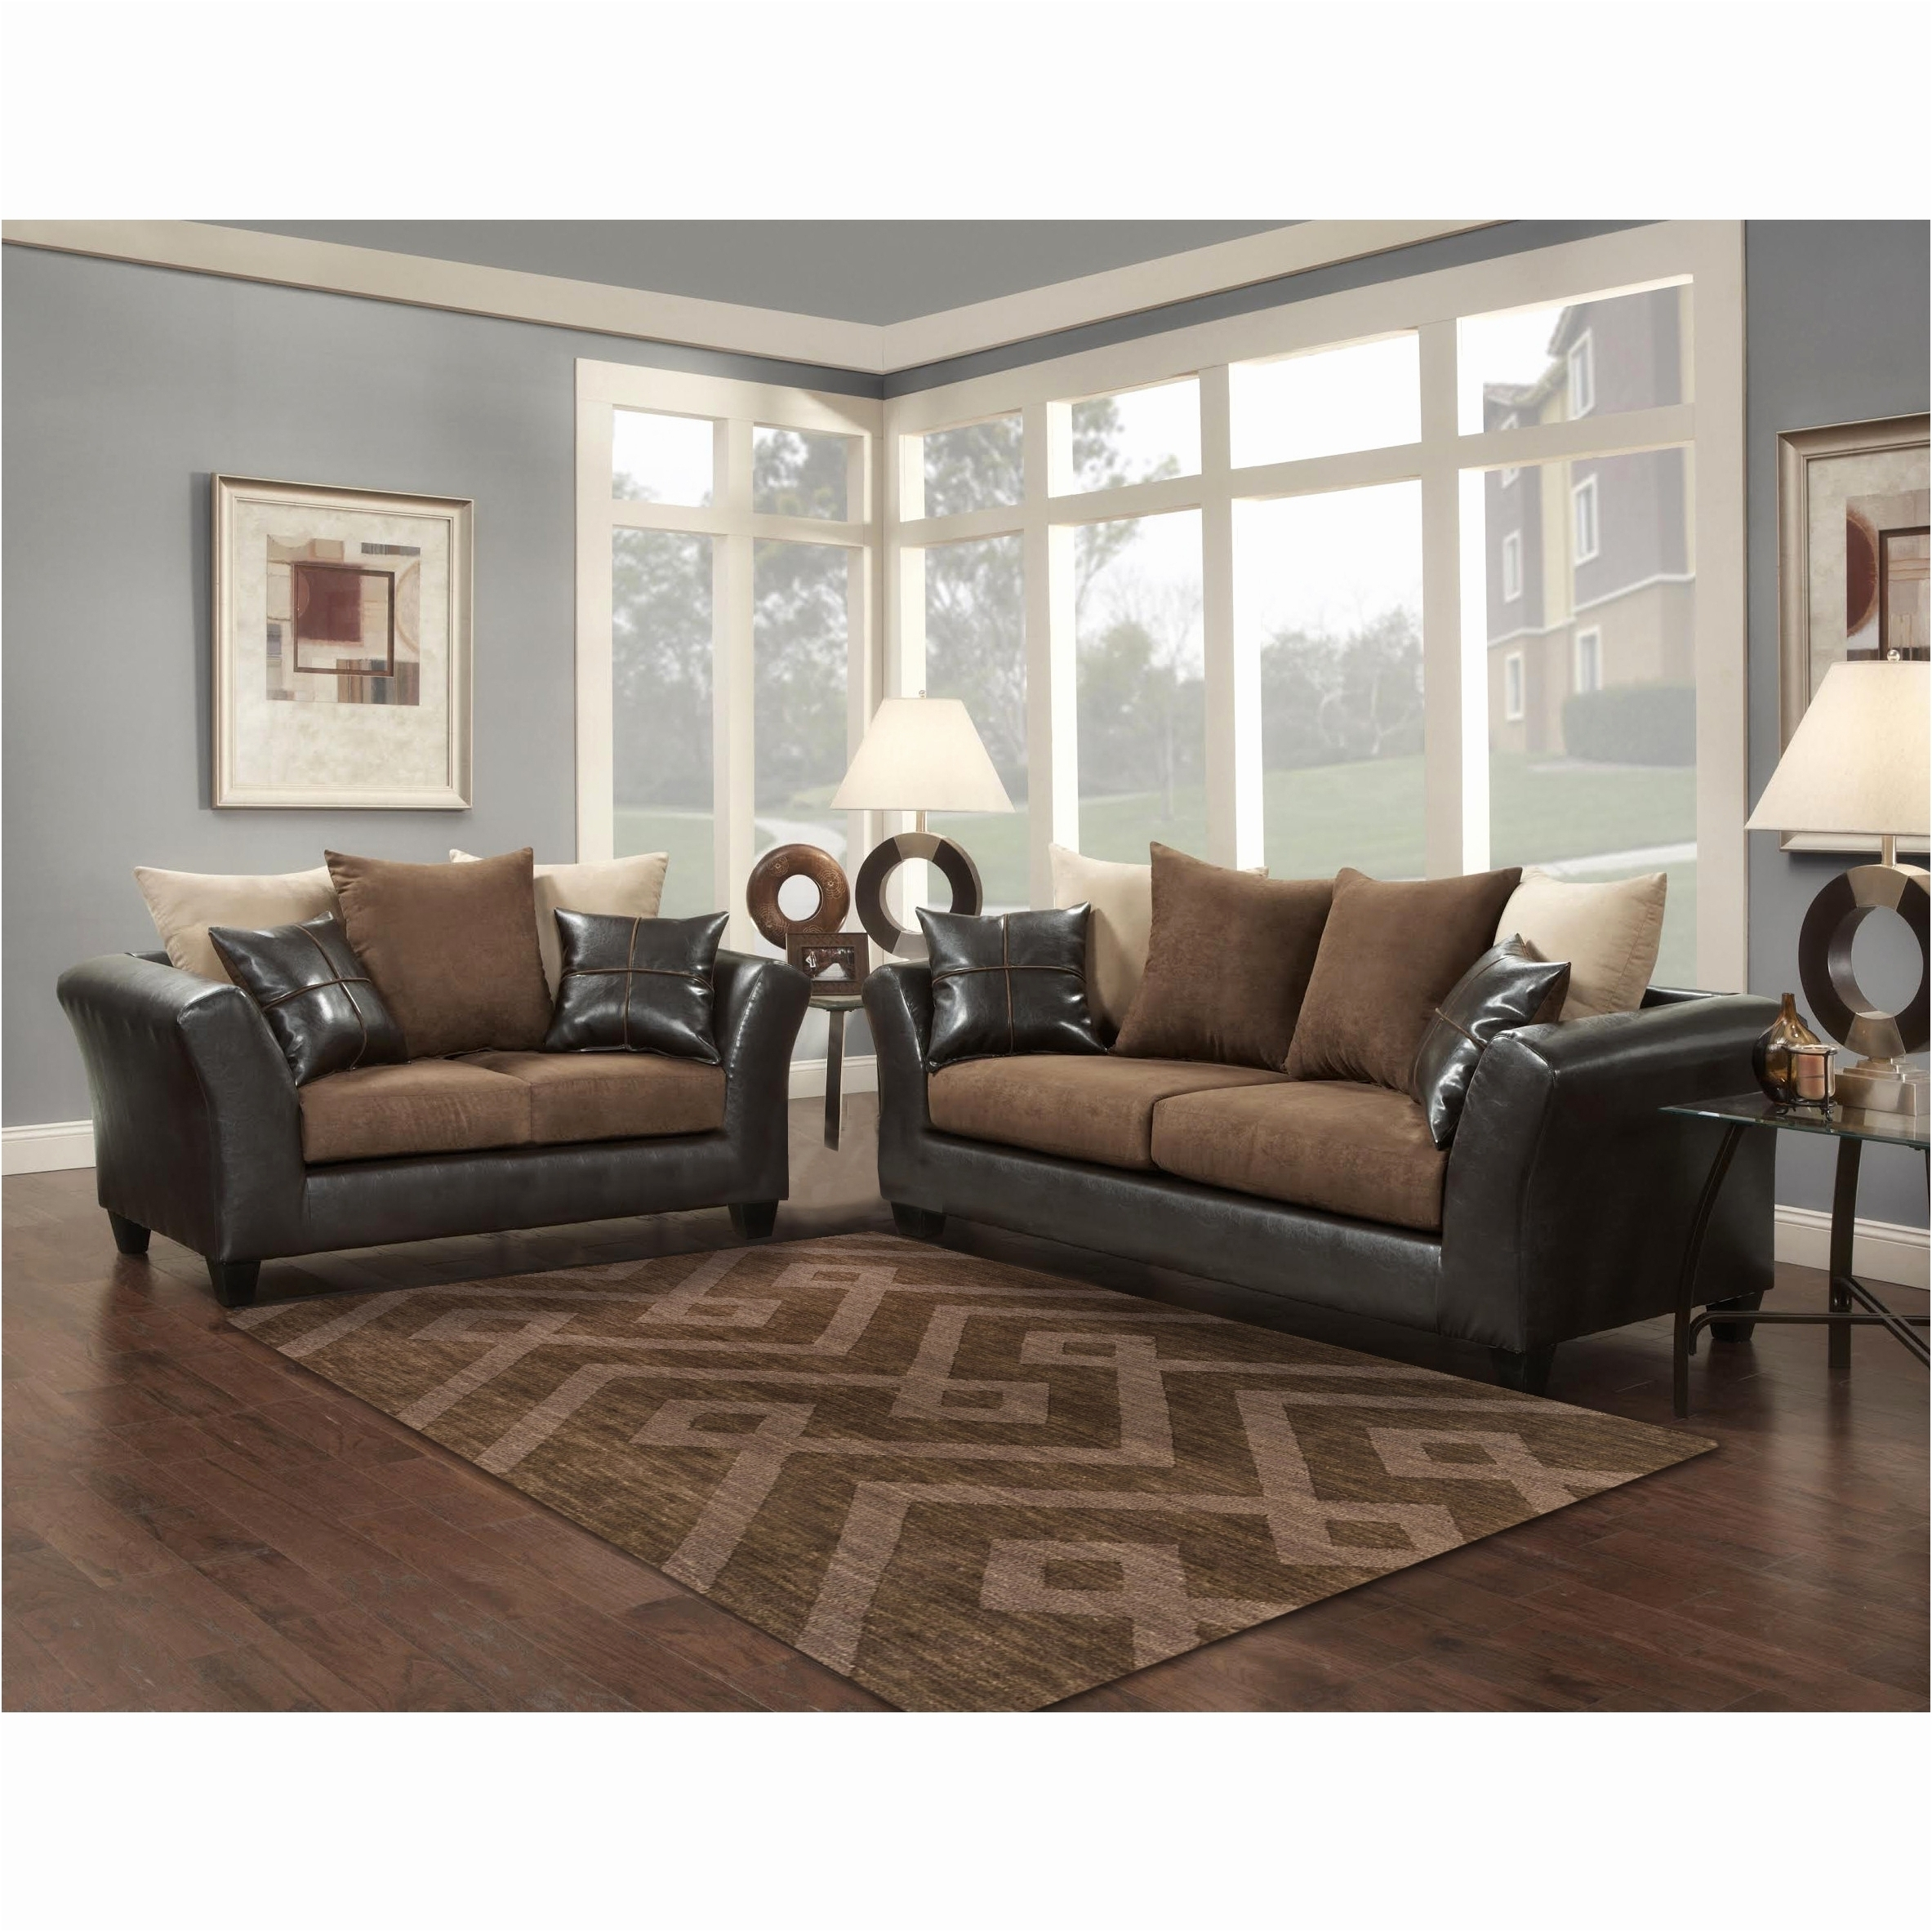 Most Recent Braxton Sectional Sofas In Brilliant Braxton Sectional Sofa – Buildsimplehome (View 14 of 20)